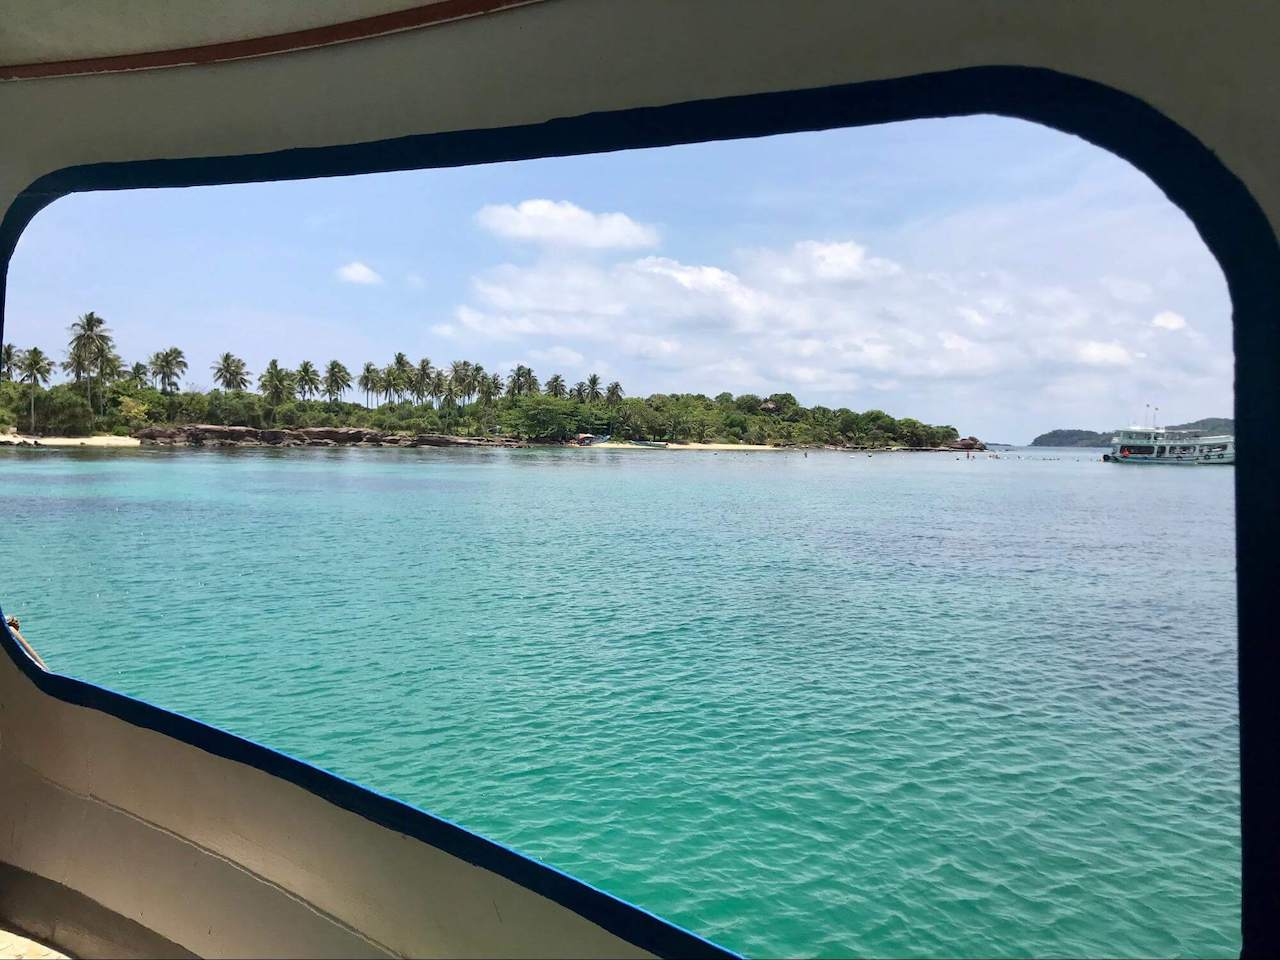 View from the Boat